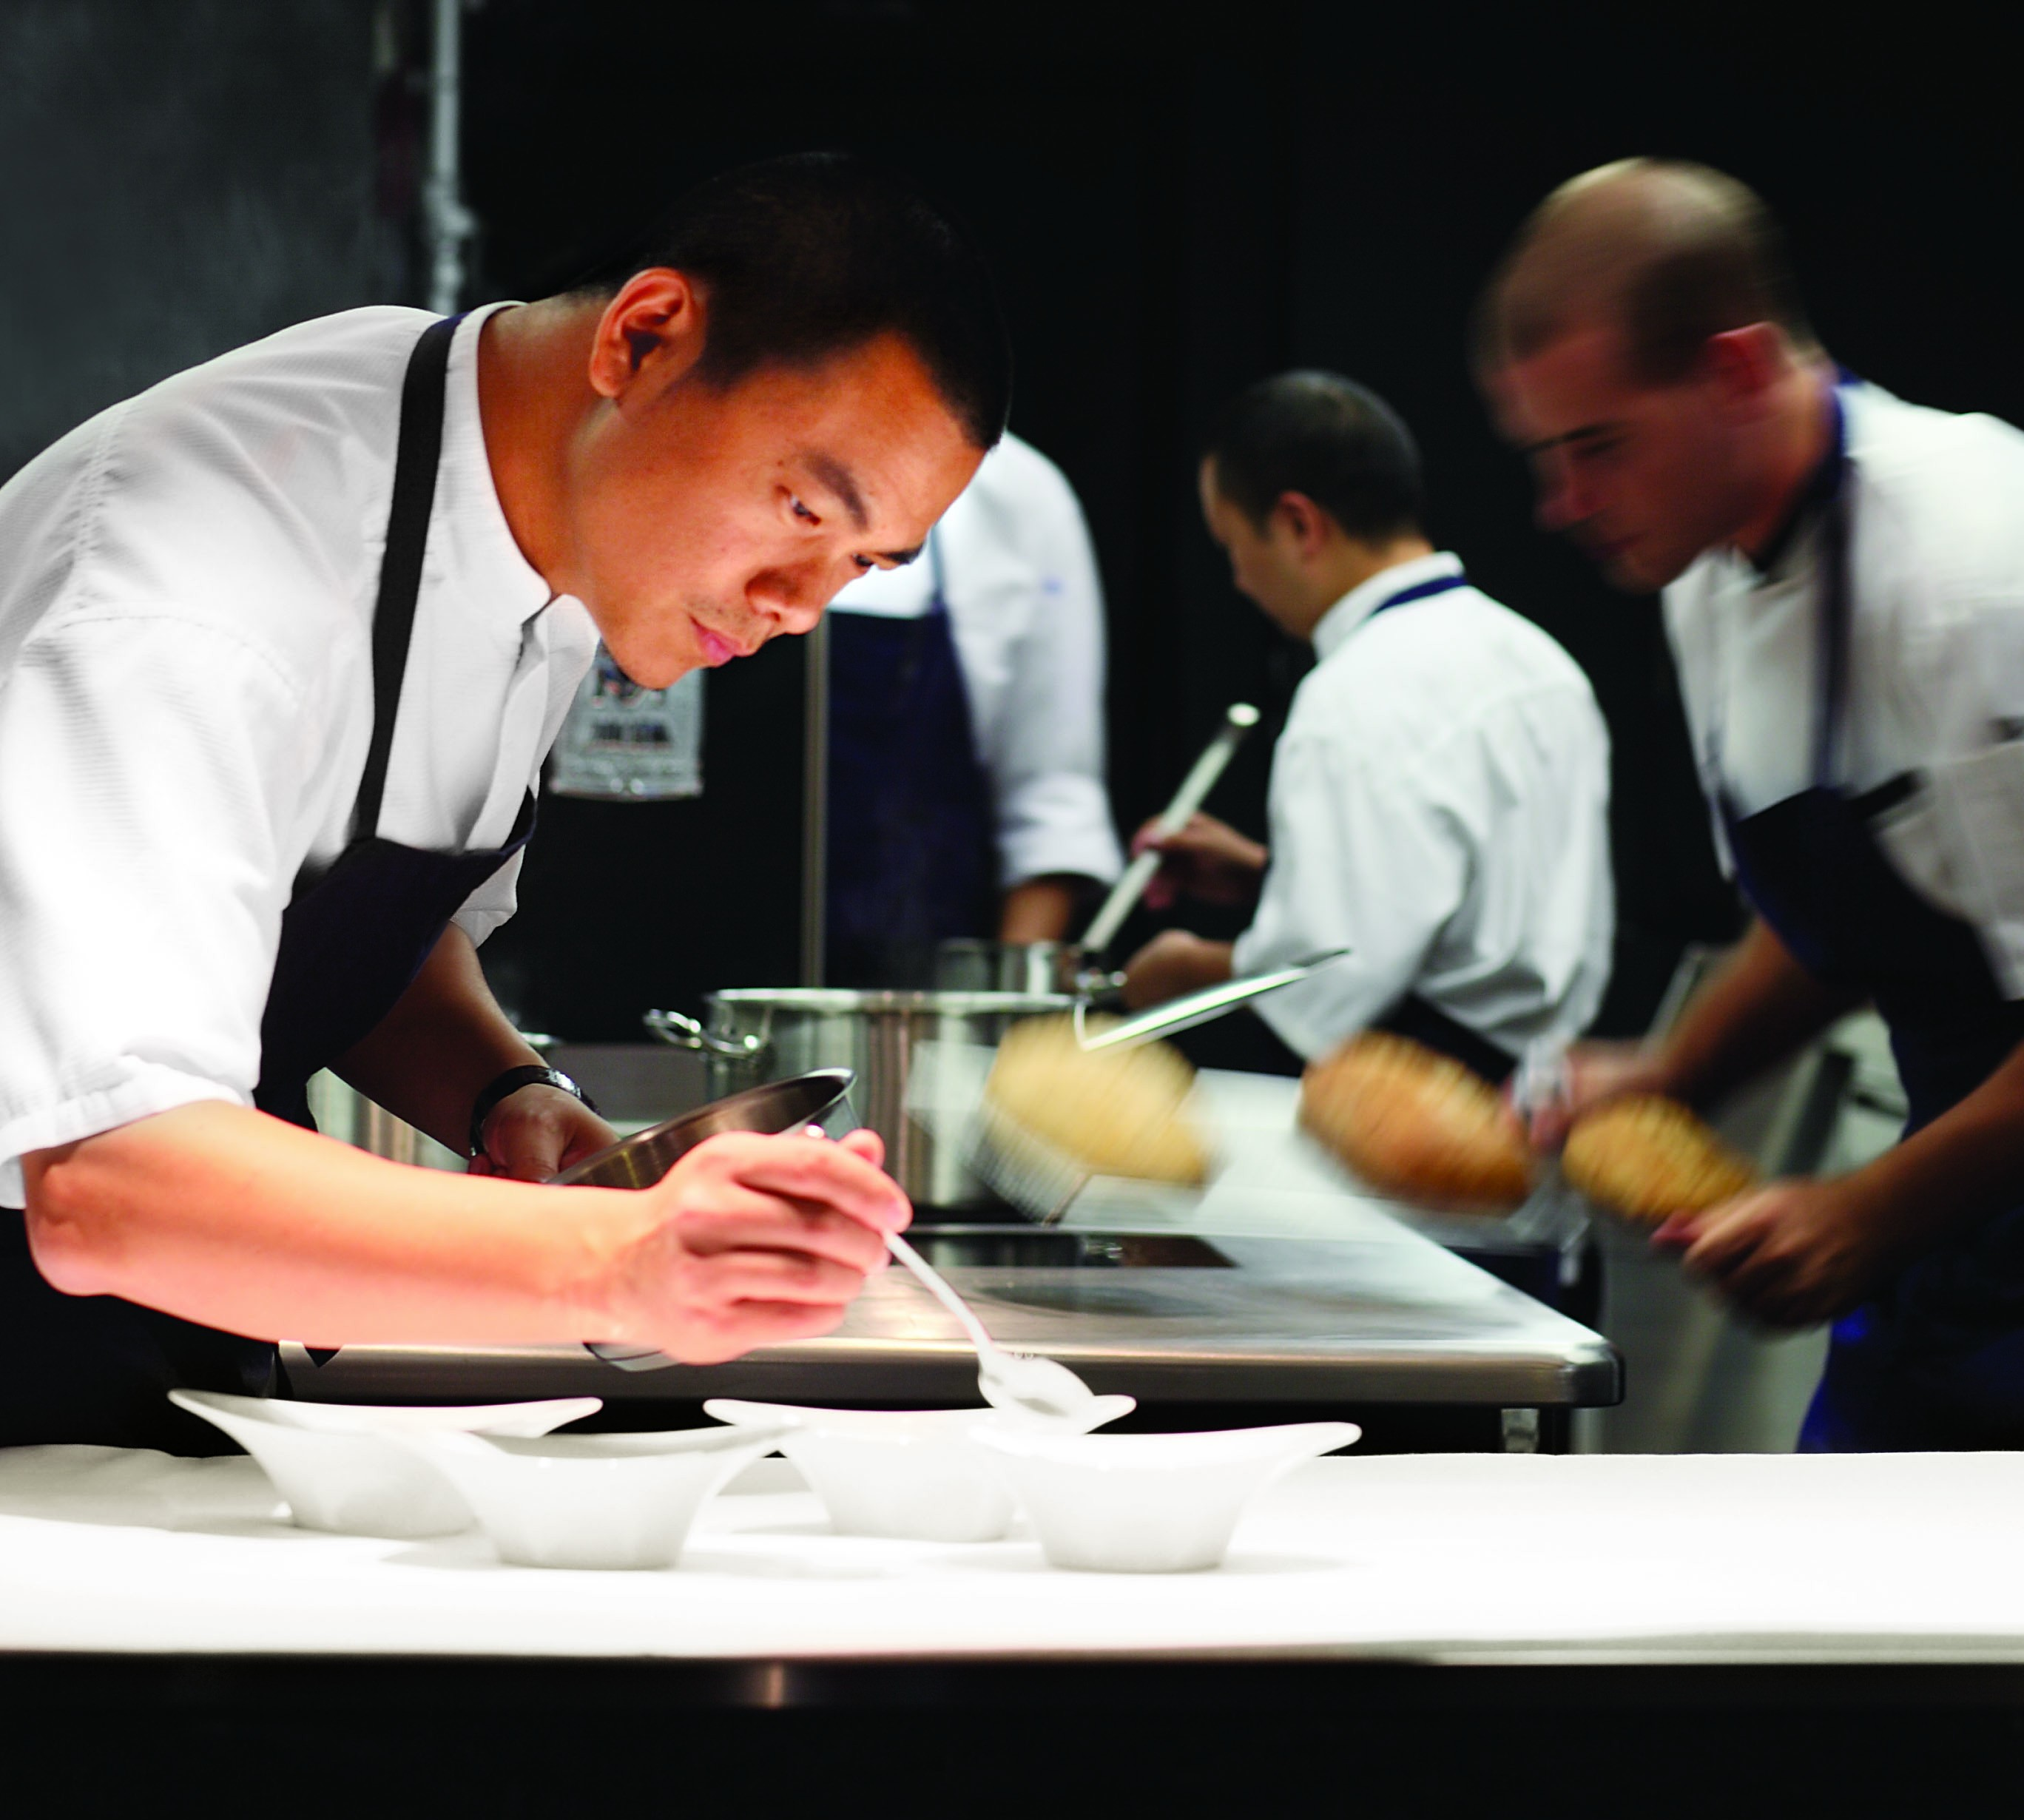 Foodcations with annalisa burgos the split personalities of chef andre chiang - Chef cucine catanzaro ...